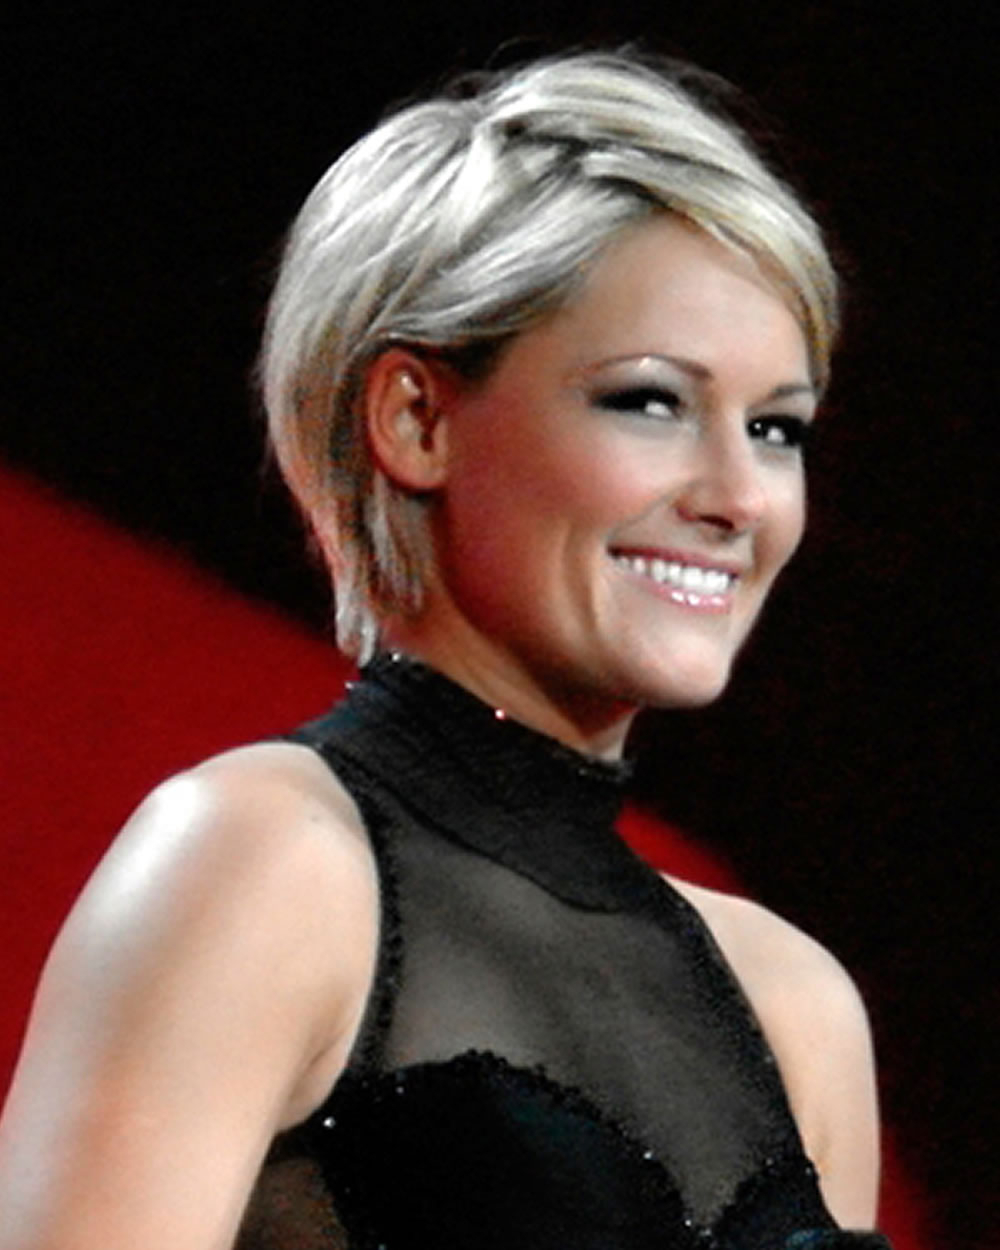 Feminine Short Hairstyles And Very Short Pixie Hair Colors – Page 6 Throughout Short Feminine Hairstyles For Fine Hair (View 20 of 25)